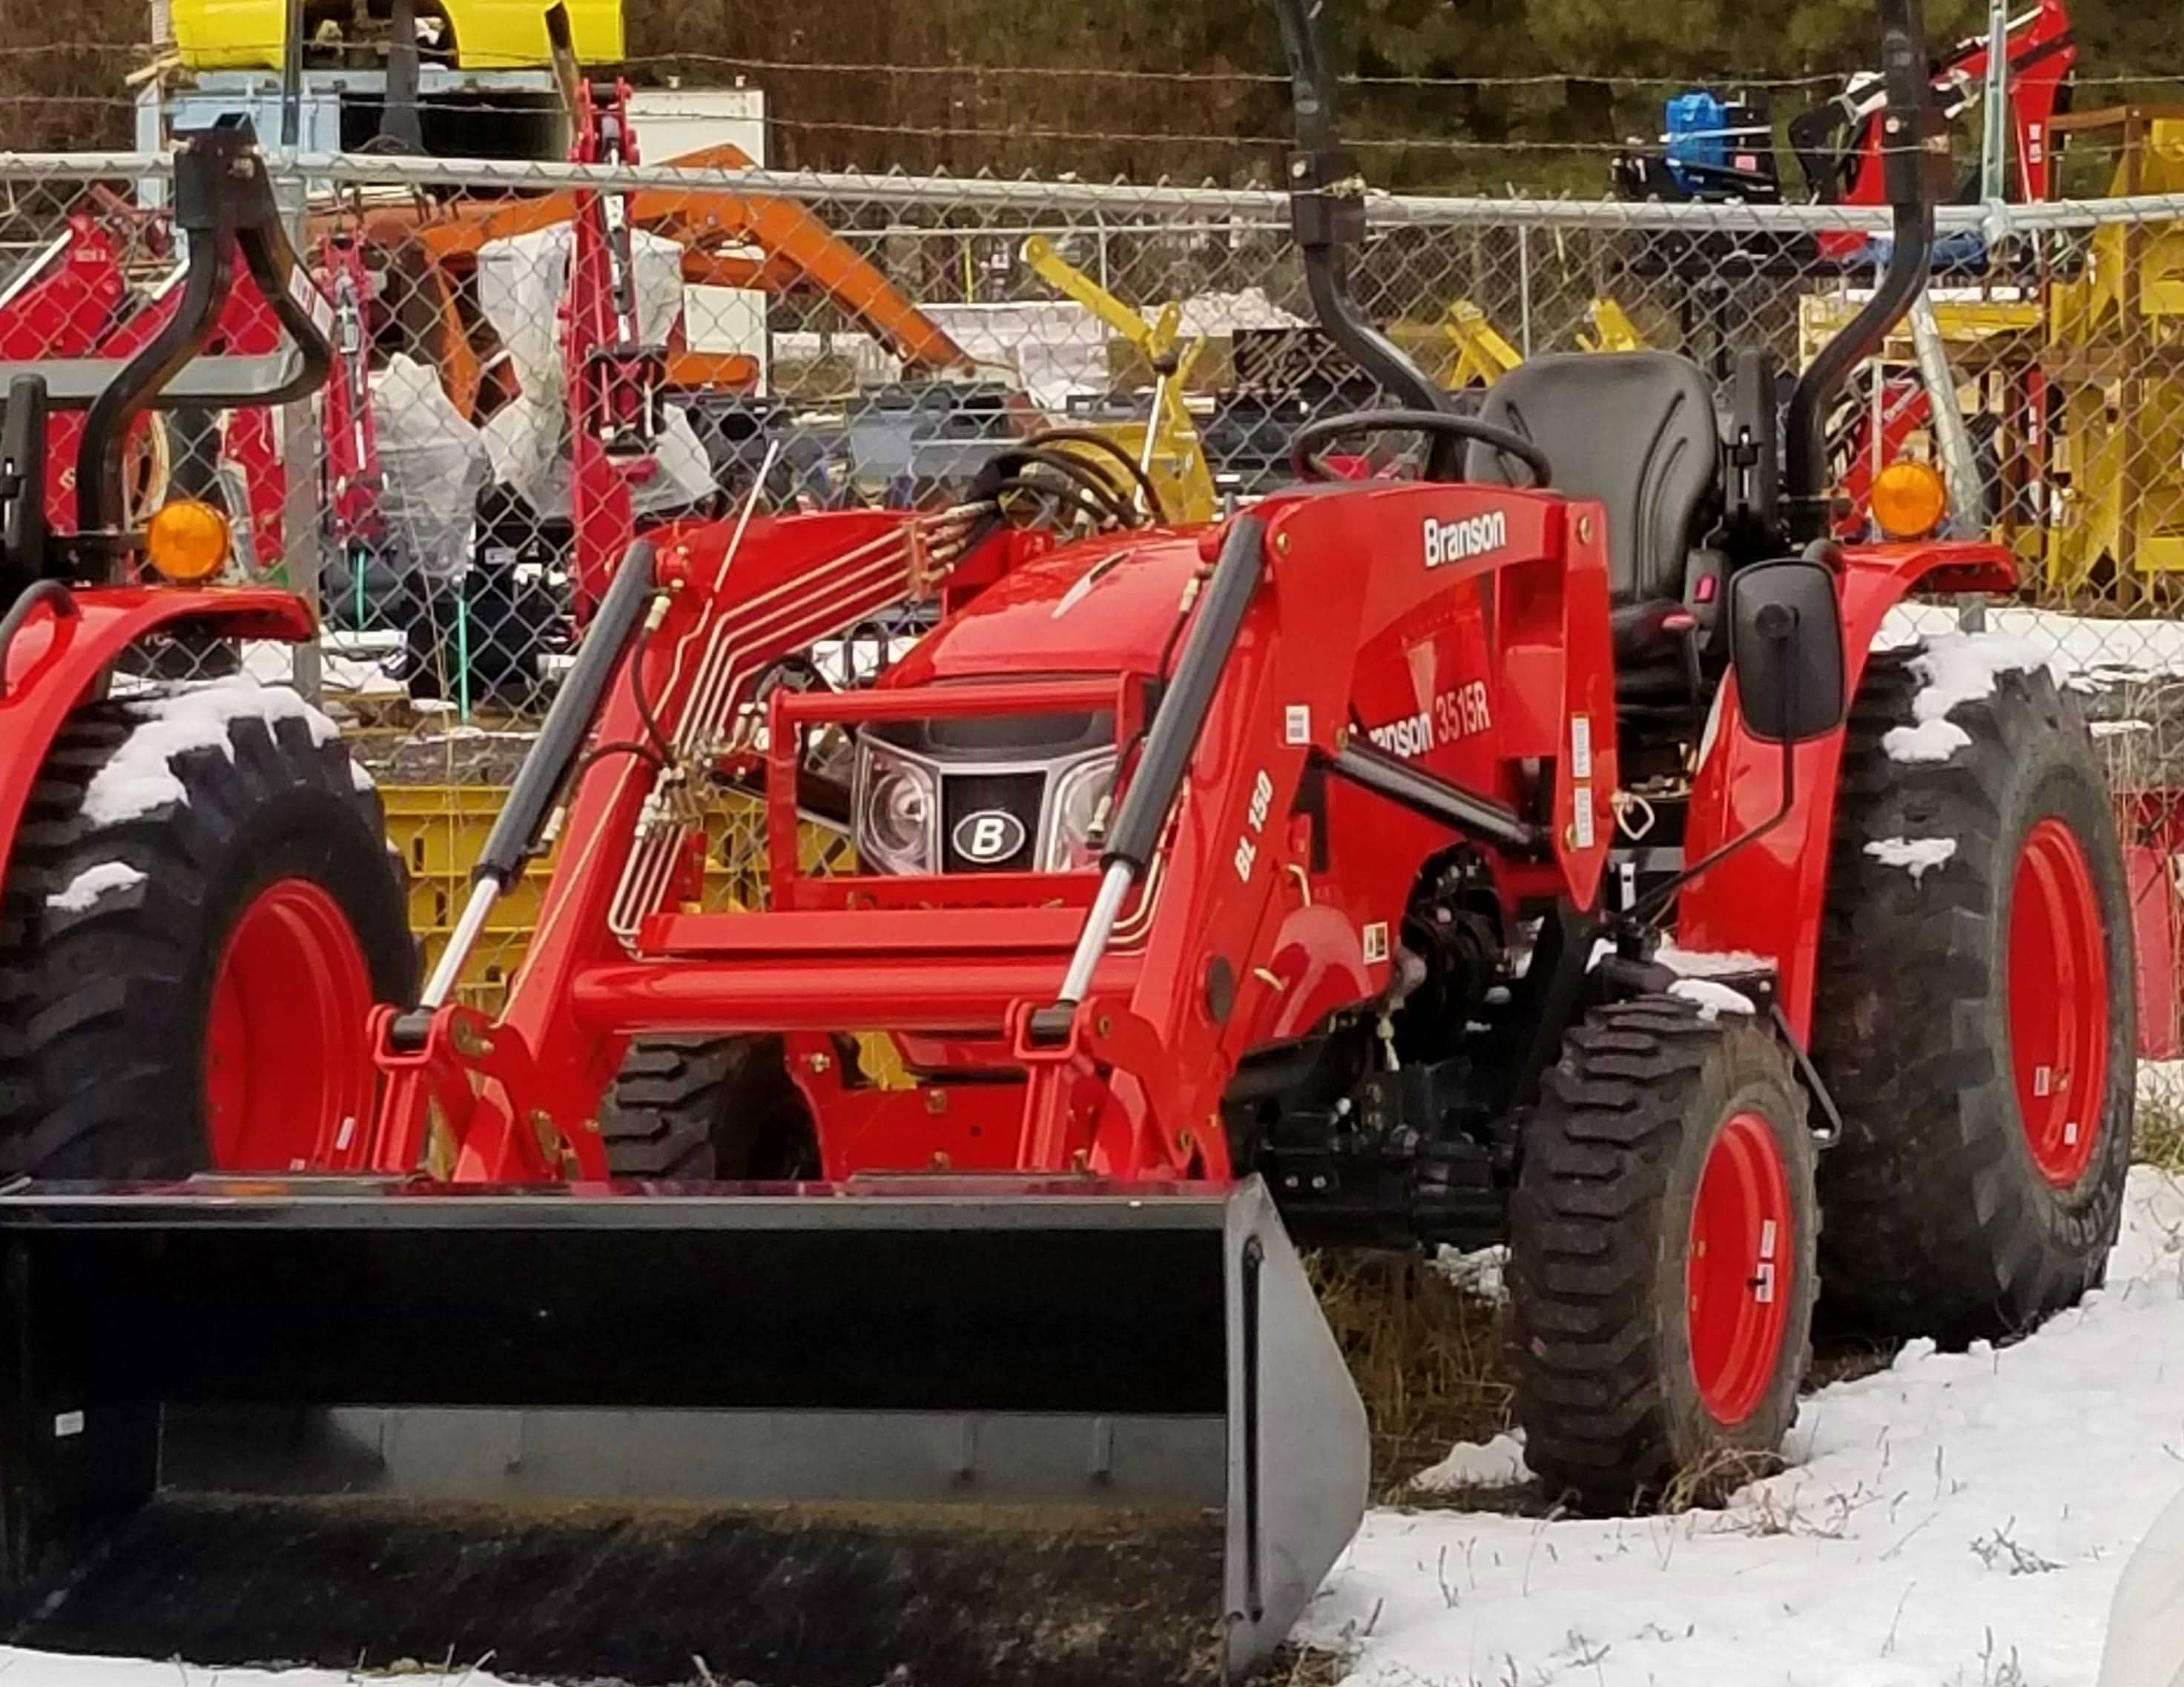 Branson 3515R with Front End Loader